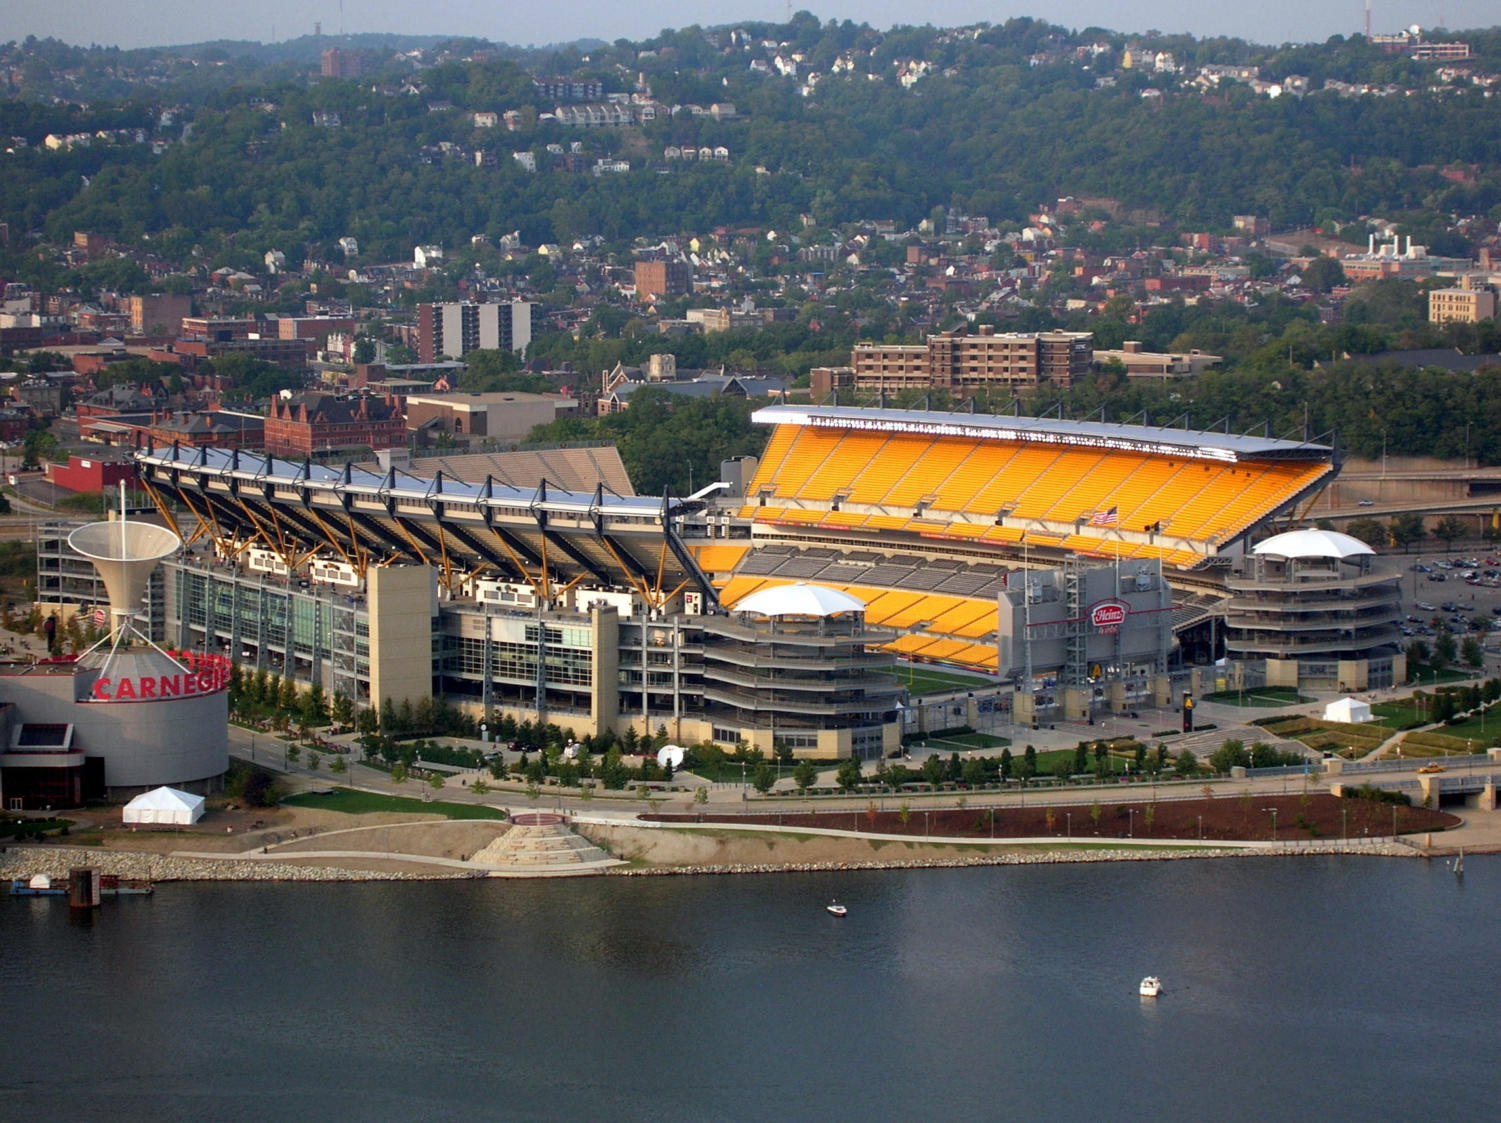 Tailgating along the North Shore will be restricted for Saturday's Pitt vs. Penn State game. (Image via Wikimedia Commons)